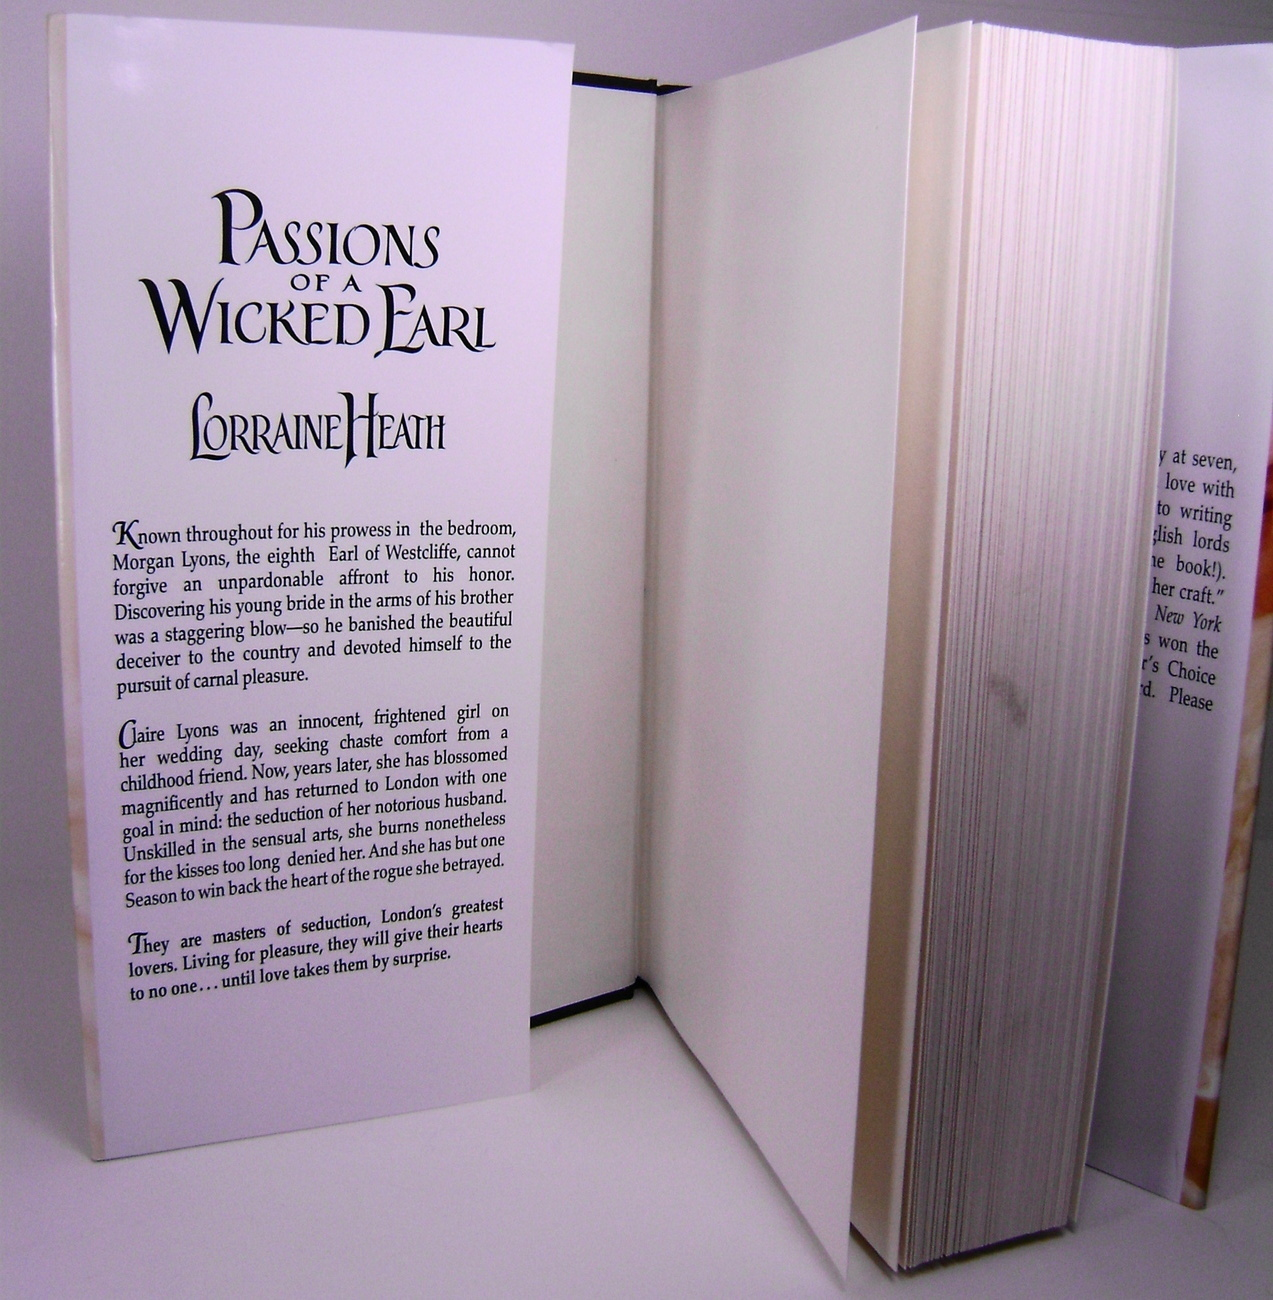 Passions Of A Wicked Earl By Lorraine Heath